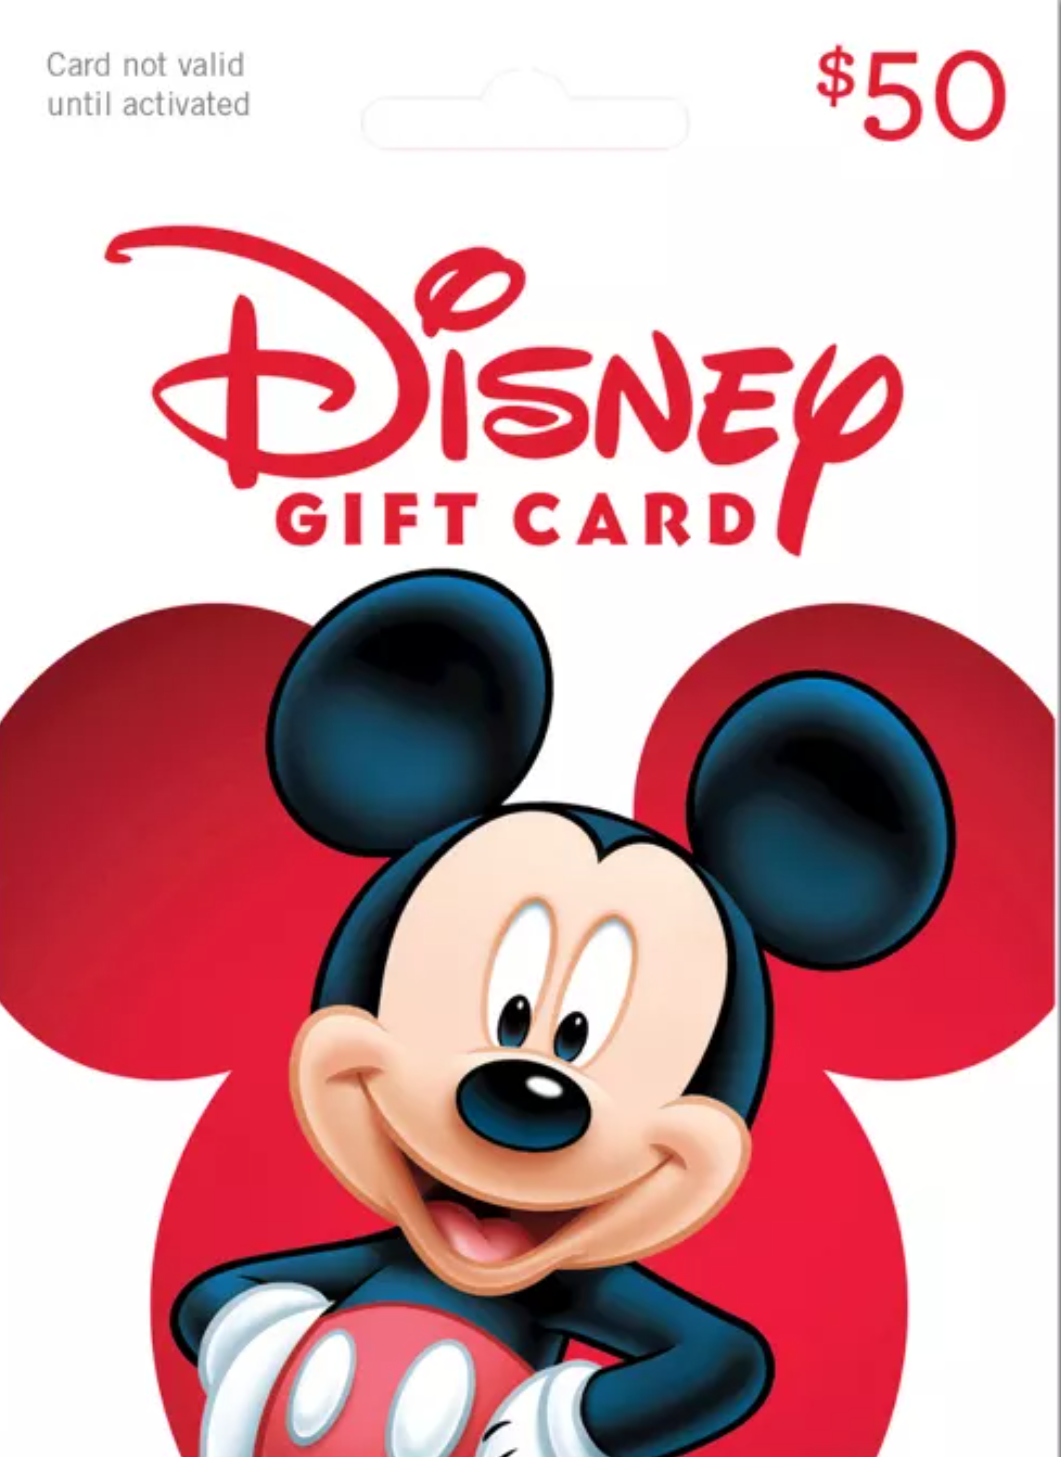 $50 Disney Gift Card Giveaway